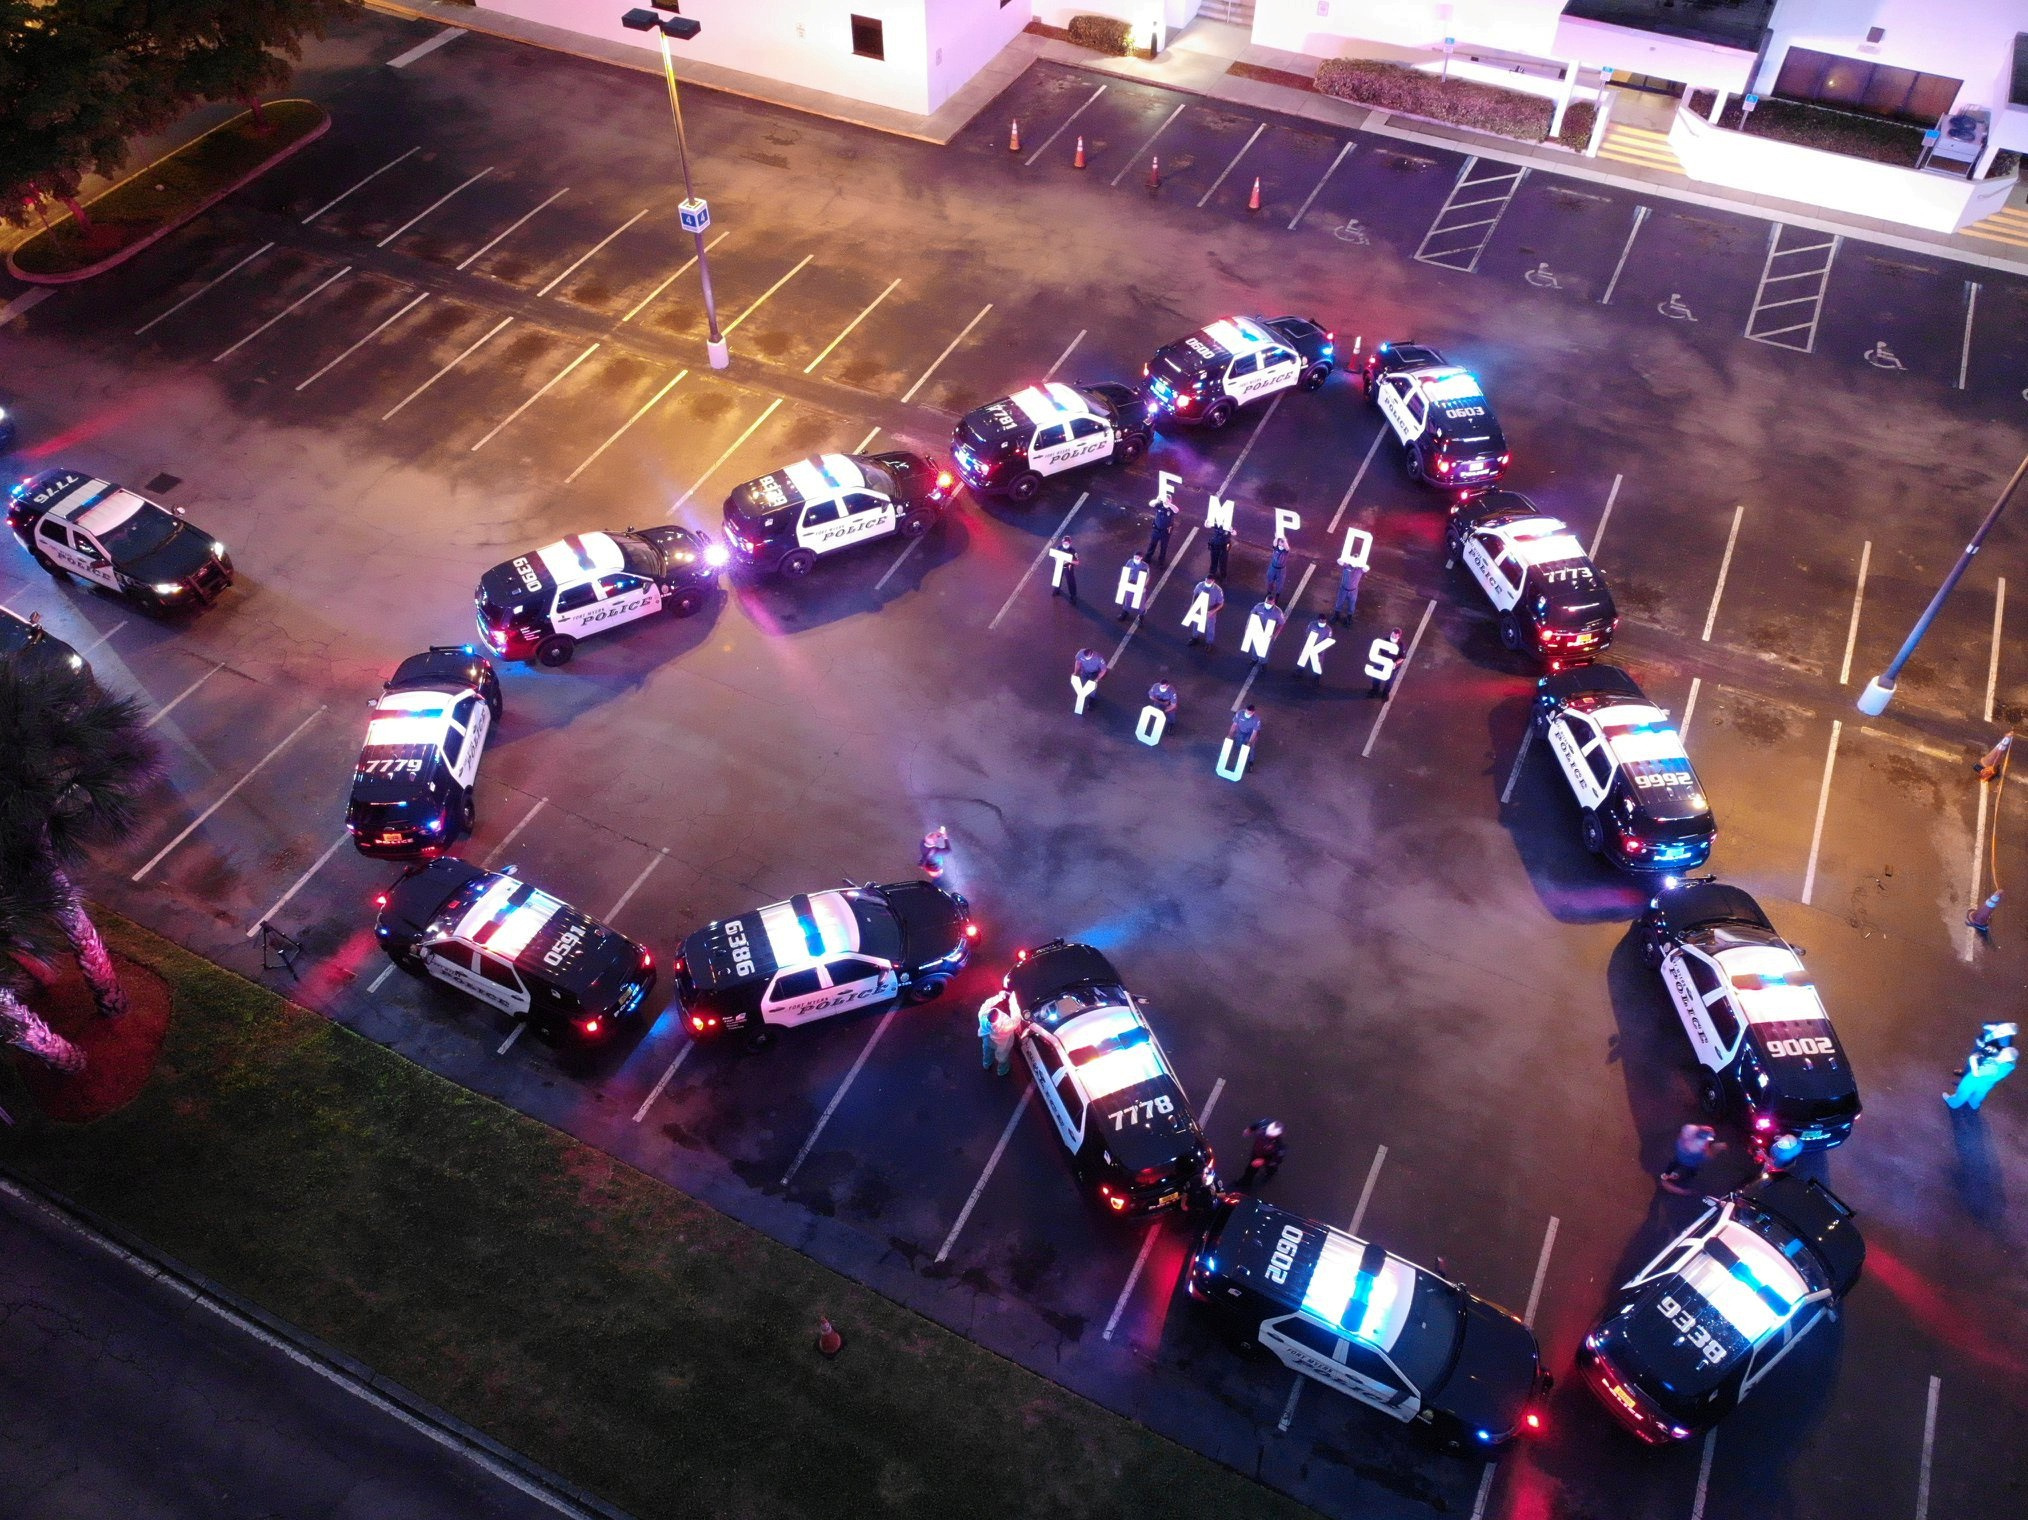 The Fort Myers Police Department makes heart out of police cars to thank health workers at Lee Memorial Hospital, in Fort Myers, U.S., April 16, 2020 in this picture obtained from social media. FORT MYERS POLICE DEPARTMENT/via REUTERS THIS IMAGE HAS BEEN SUPPLIED BY A THIRD PARTY. MANDATORY CREDIT.     TPX IMAGES OF THE DAY